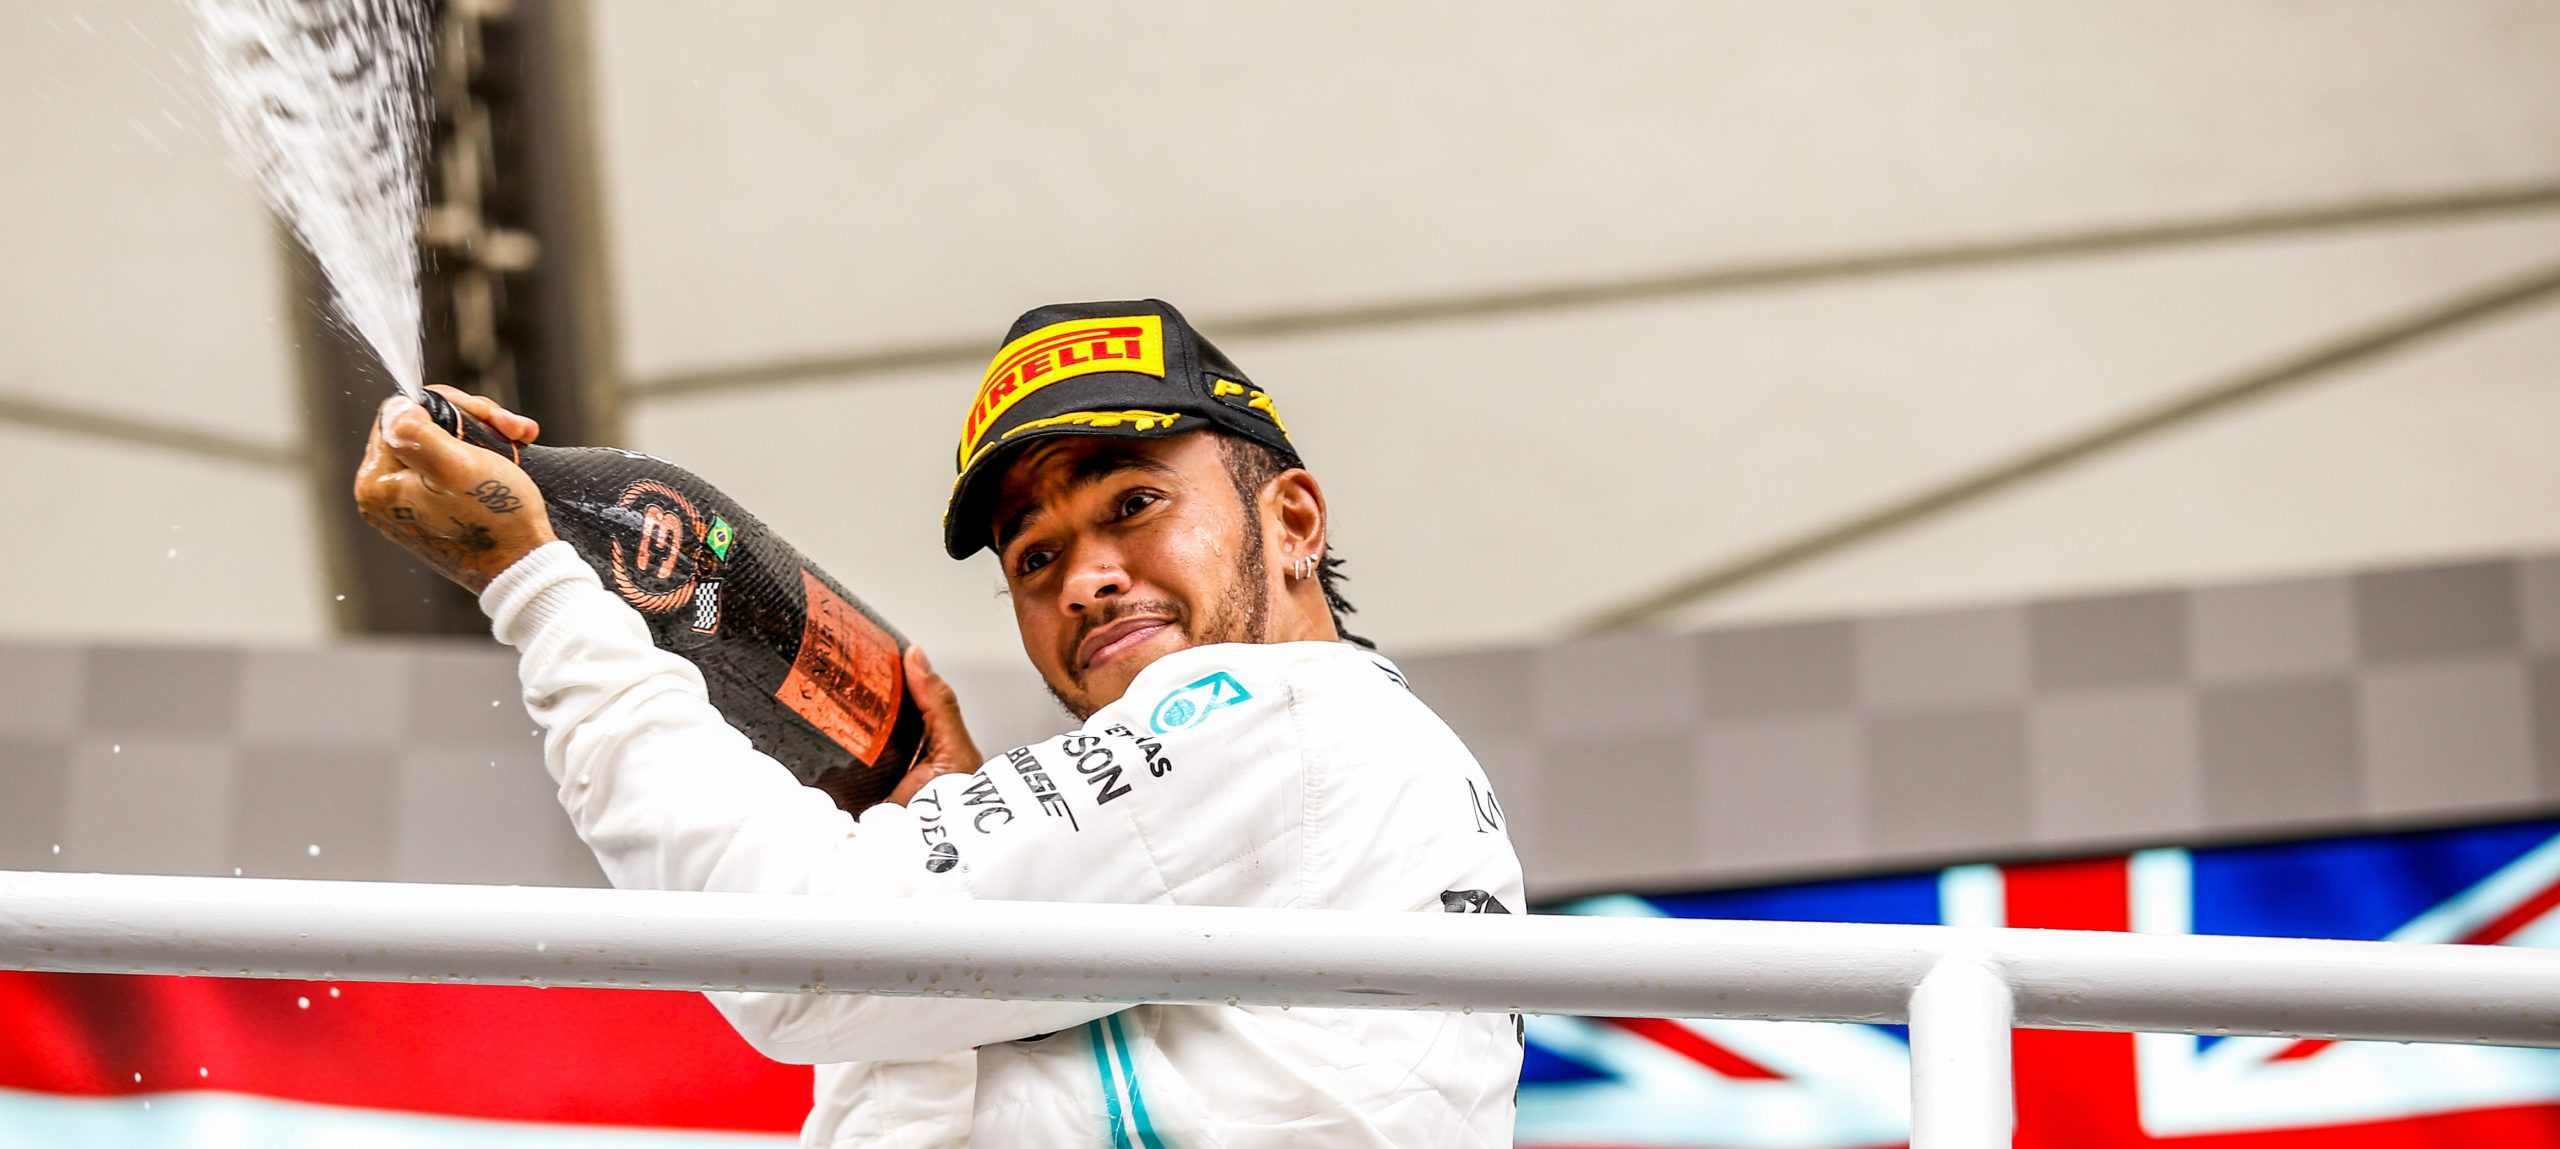 Mercedes-AMG Petronas Formula One Team's Lewis Hamilton wants to become Formula One World Champions for the 7th time in his career